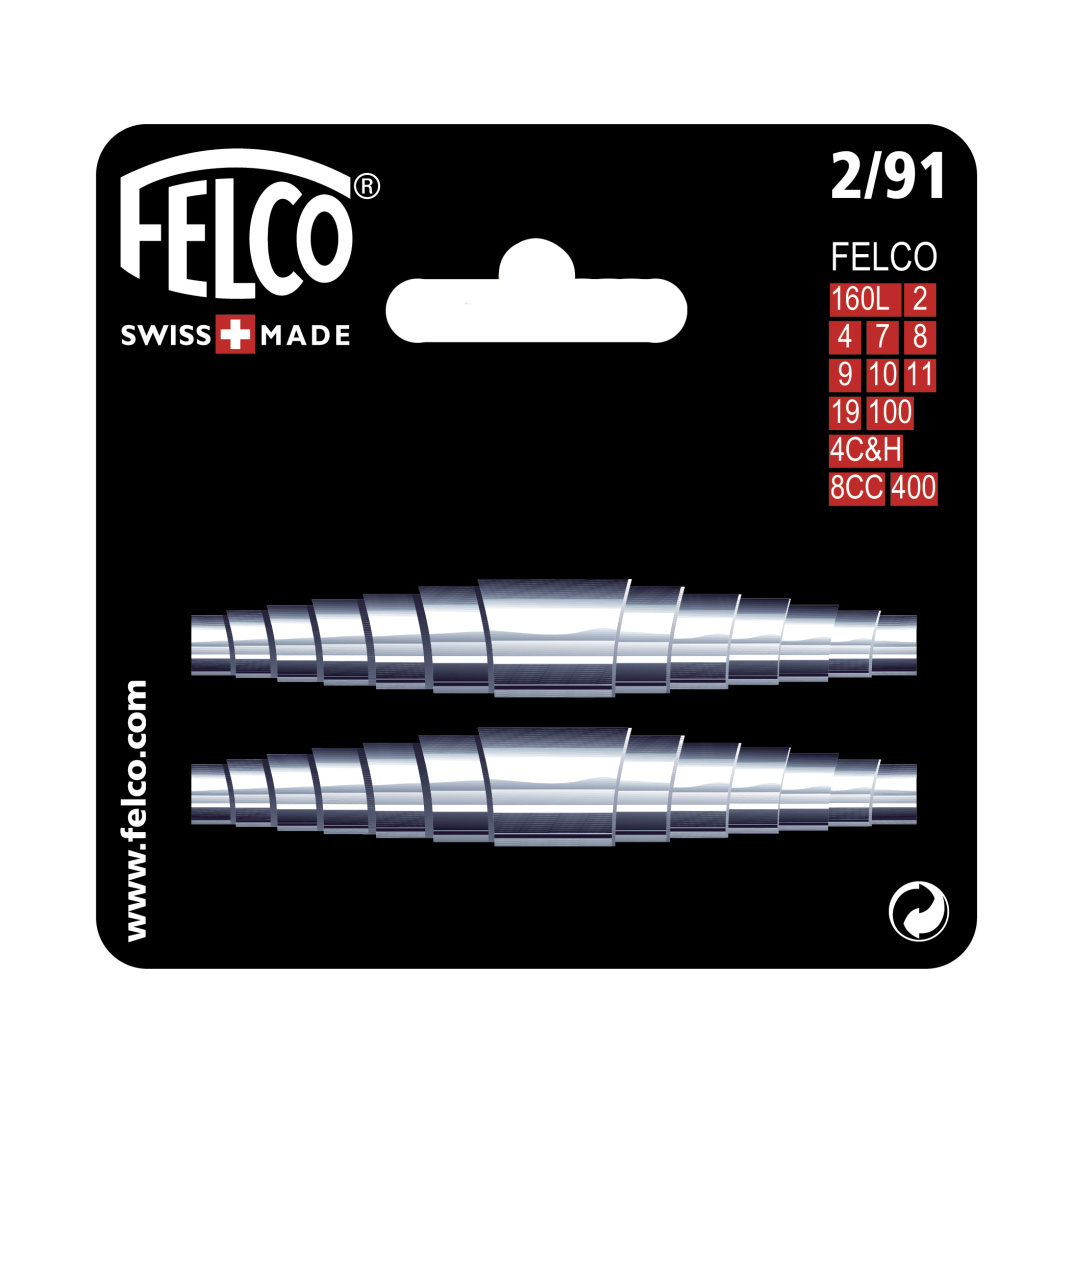 Replacement Springs for FELCO F2, F4, F7, F8, F9, F10, F50, F51, F100, F160L FE-2/91